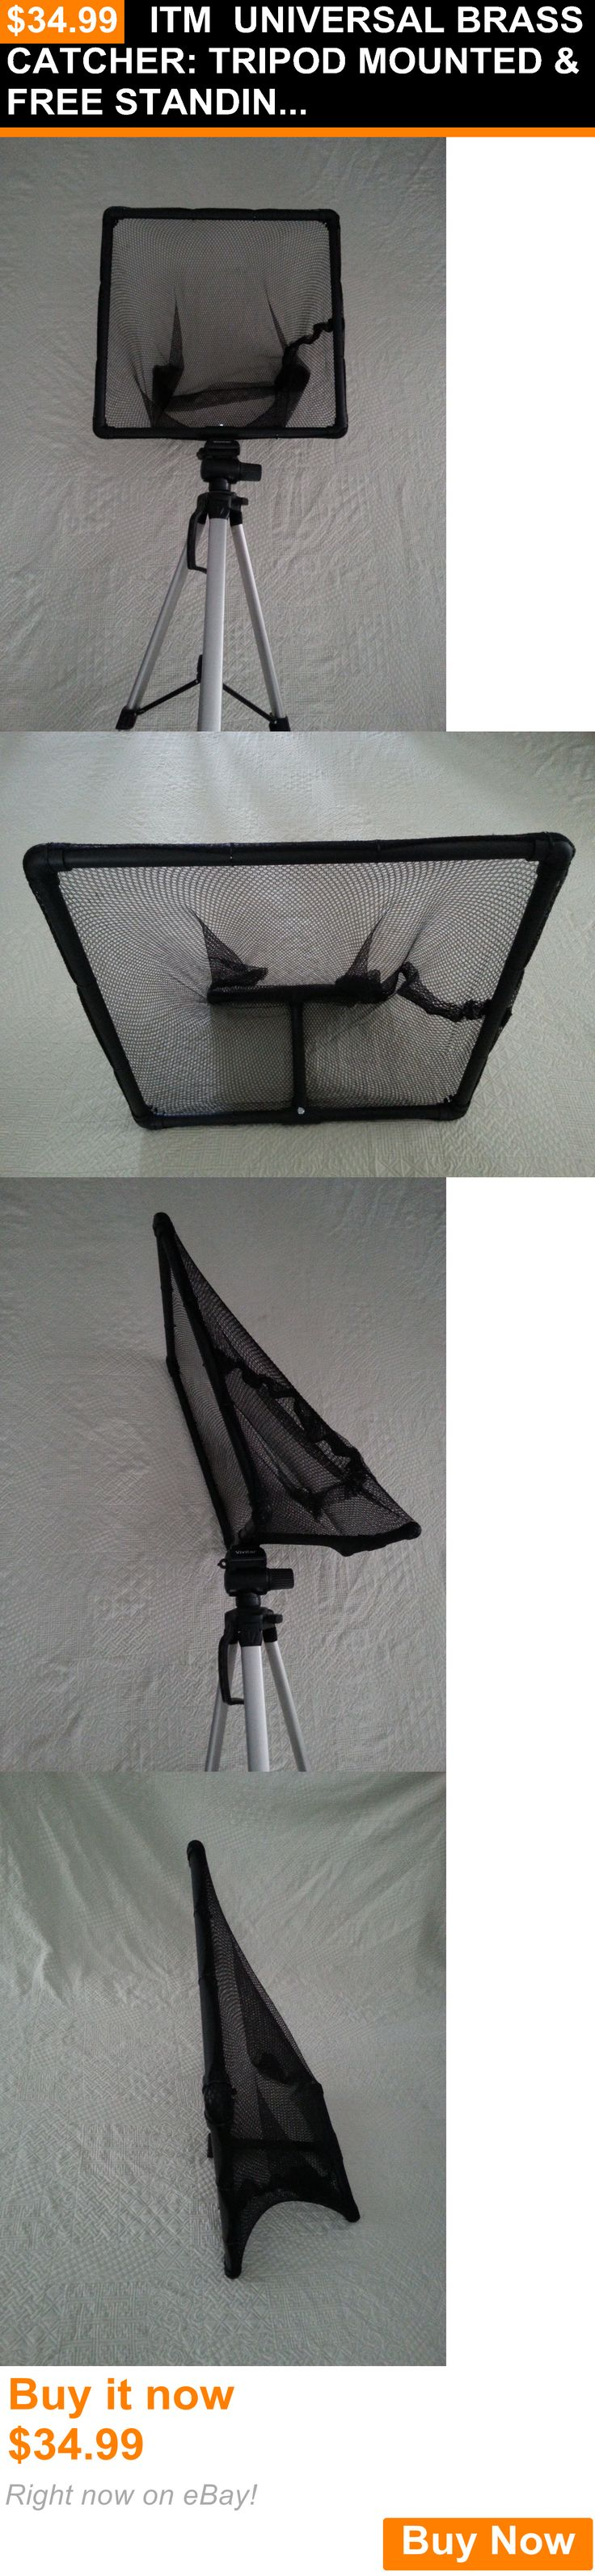 Other Hunting 383: Itm Universal Brass Catcher: Tripod Mounted And Free Standing BUY IT NOW ONLY: $34.99